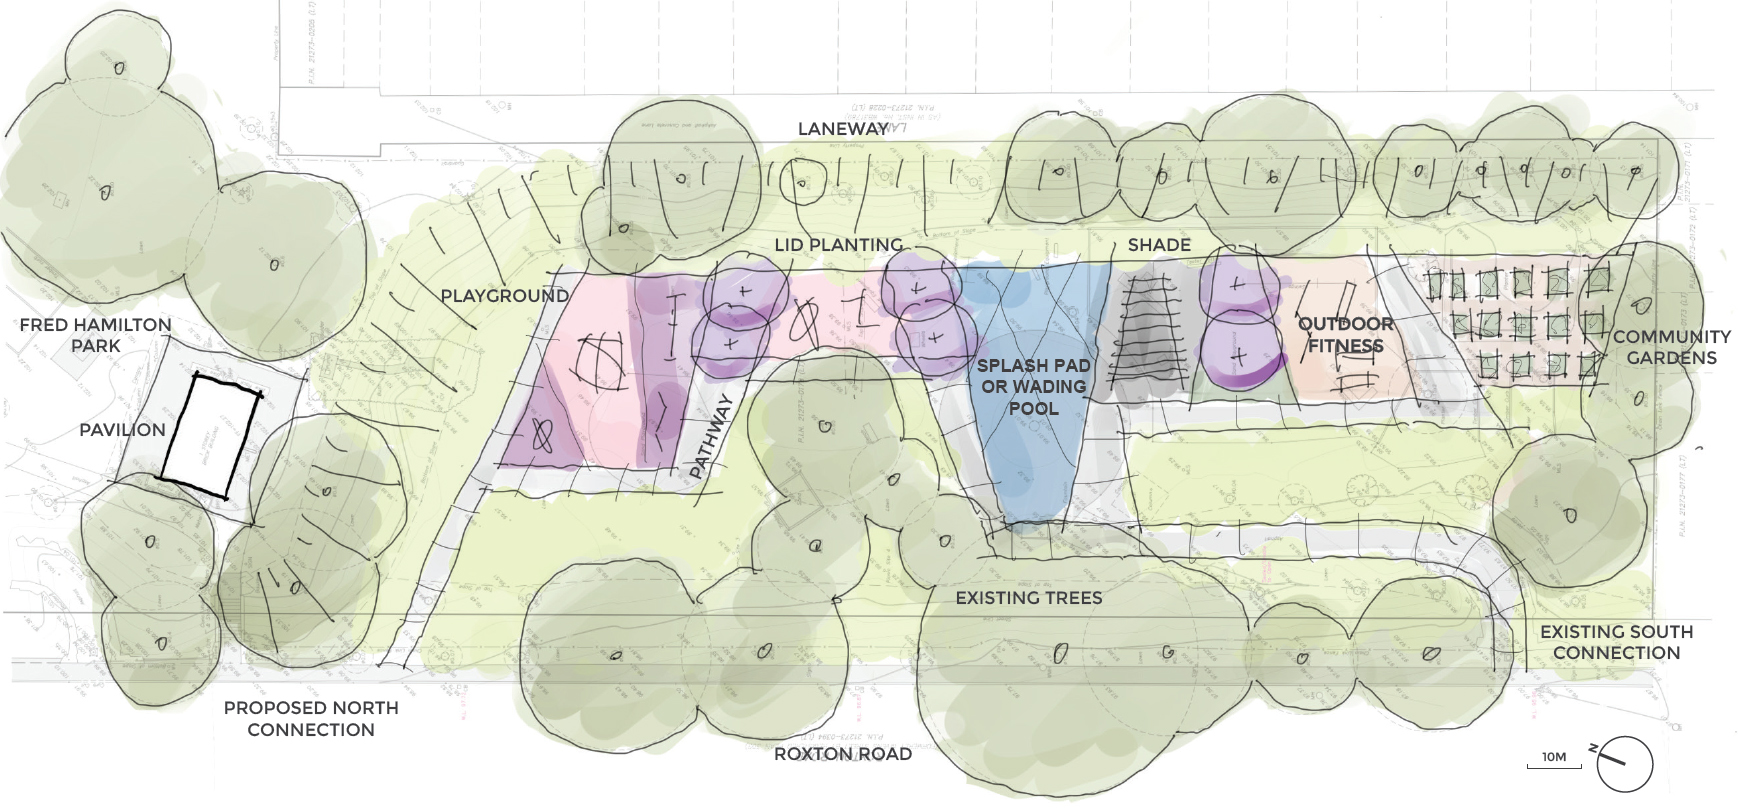 A sketch-style concept plan for the playground and wading pool enhancements. The layout has all the park amenities along the east edge of the park with open lawn space on the other side along Roxton road. The playground is shown in pink, the splash pad is shown in blue, the outdoor fitness area is shown in light brown and the new plantings are shown in purple focused at the east end of the park between the park features.